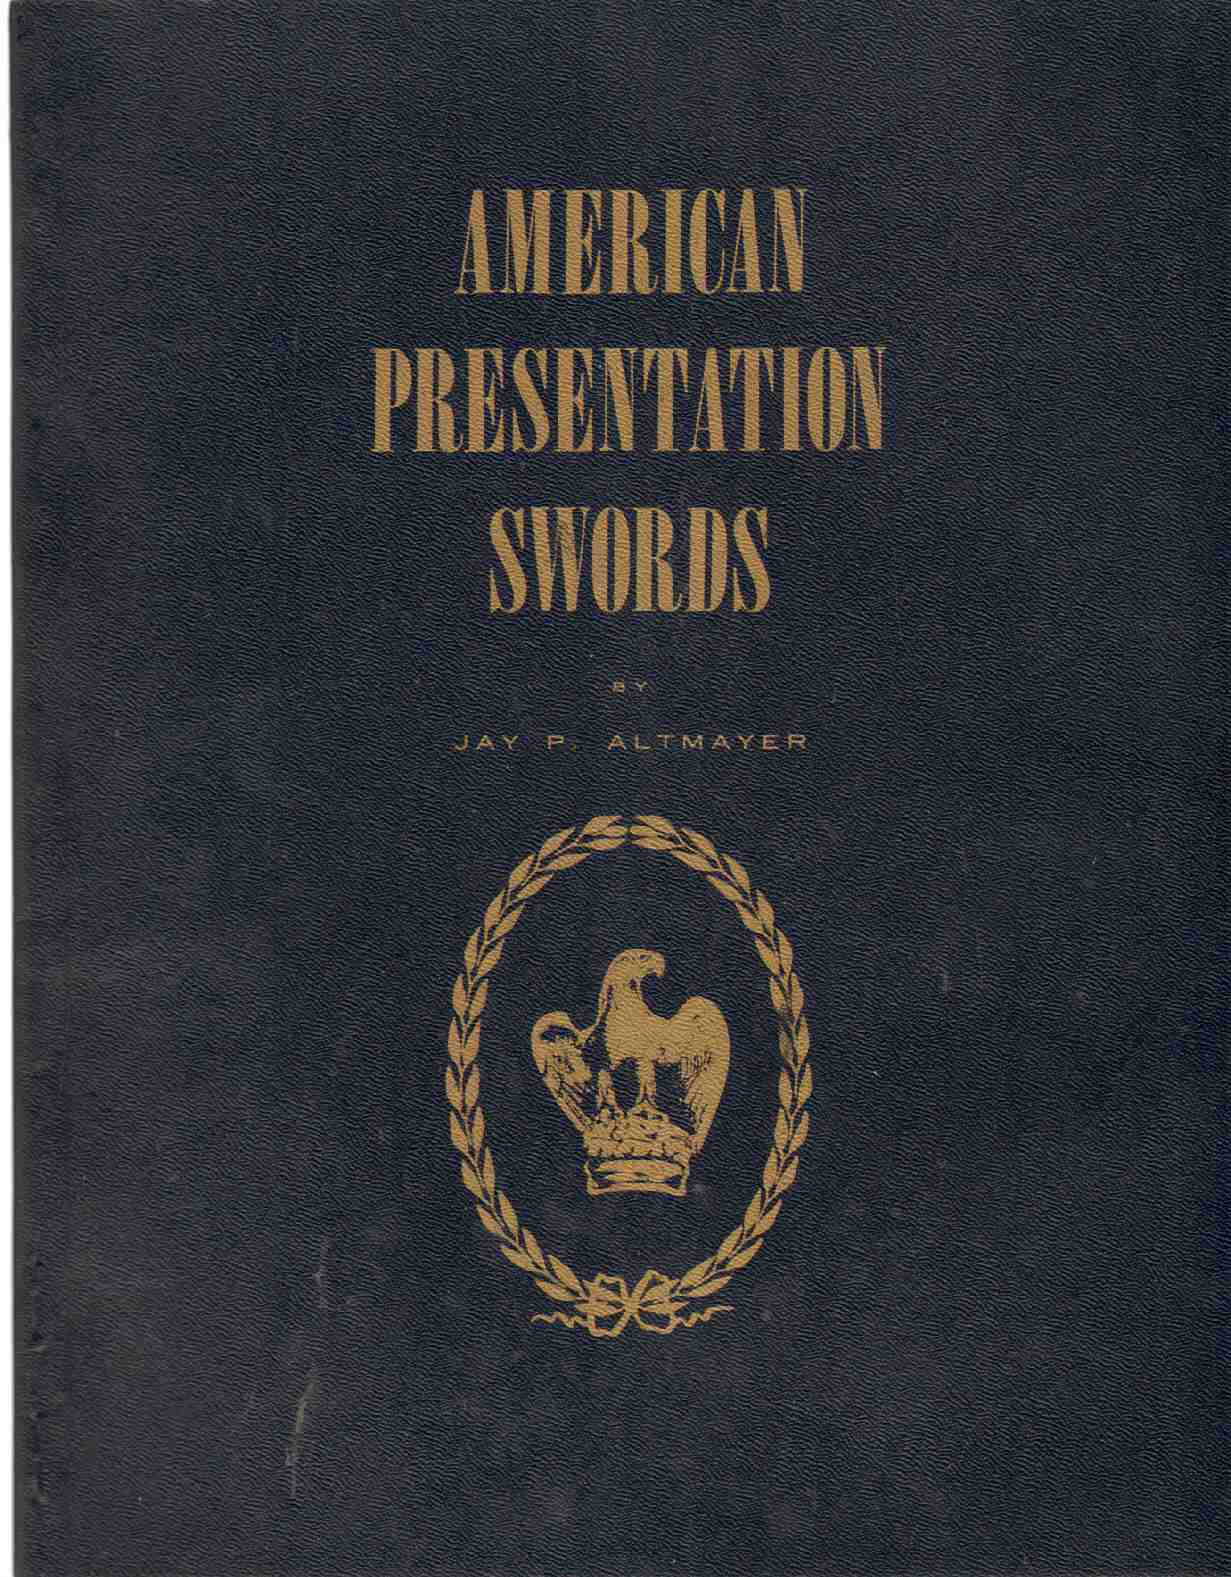 Image for AMERICAN PRESENTATION SWORDS A Study of the Design and Development of Presentation Swords in the United States from Post Revolutionary Times Until after the Close of the Spanish American War